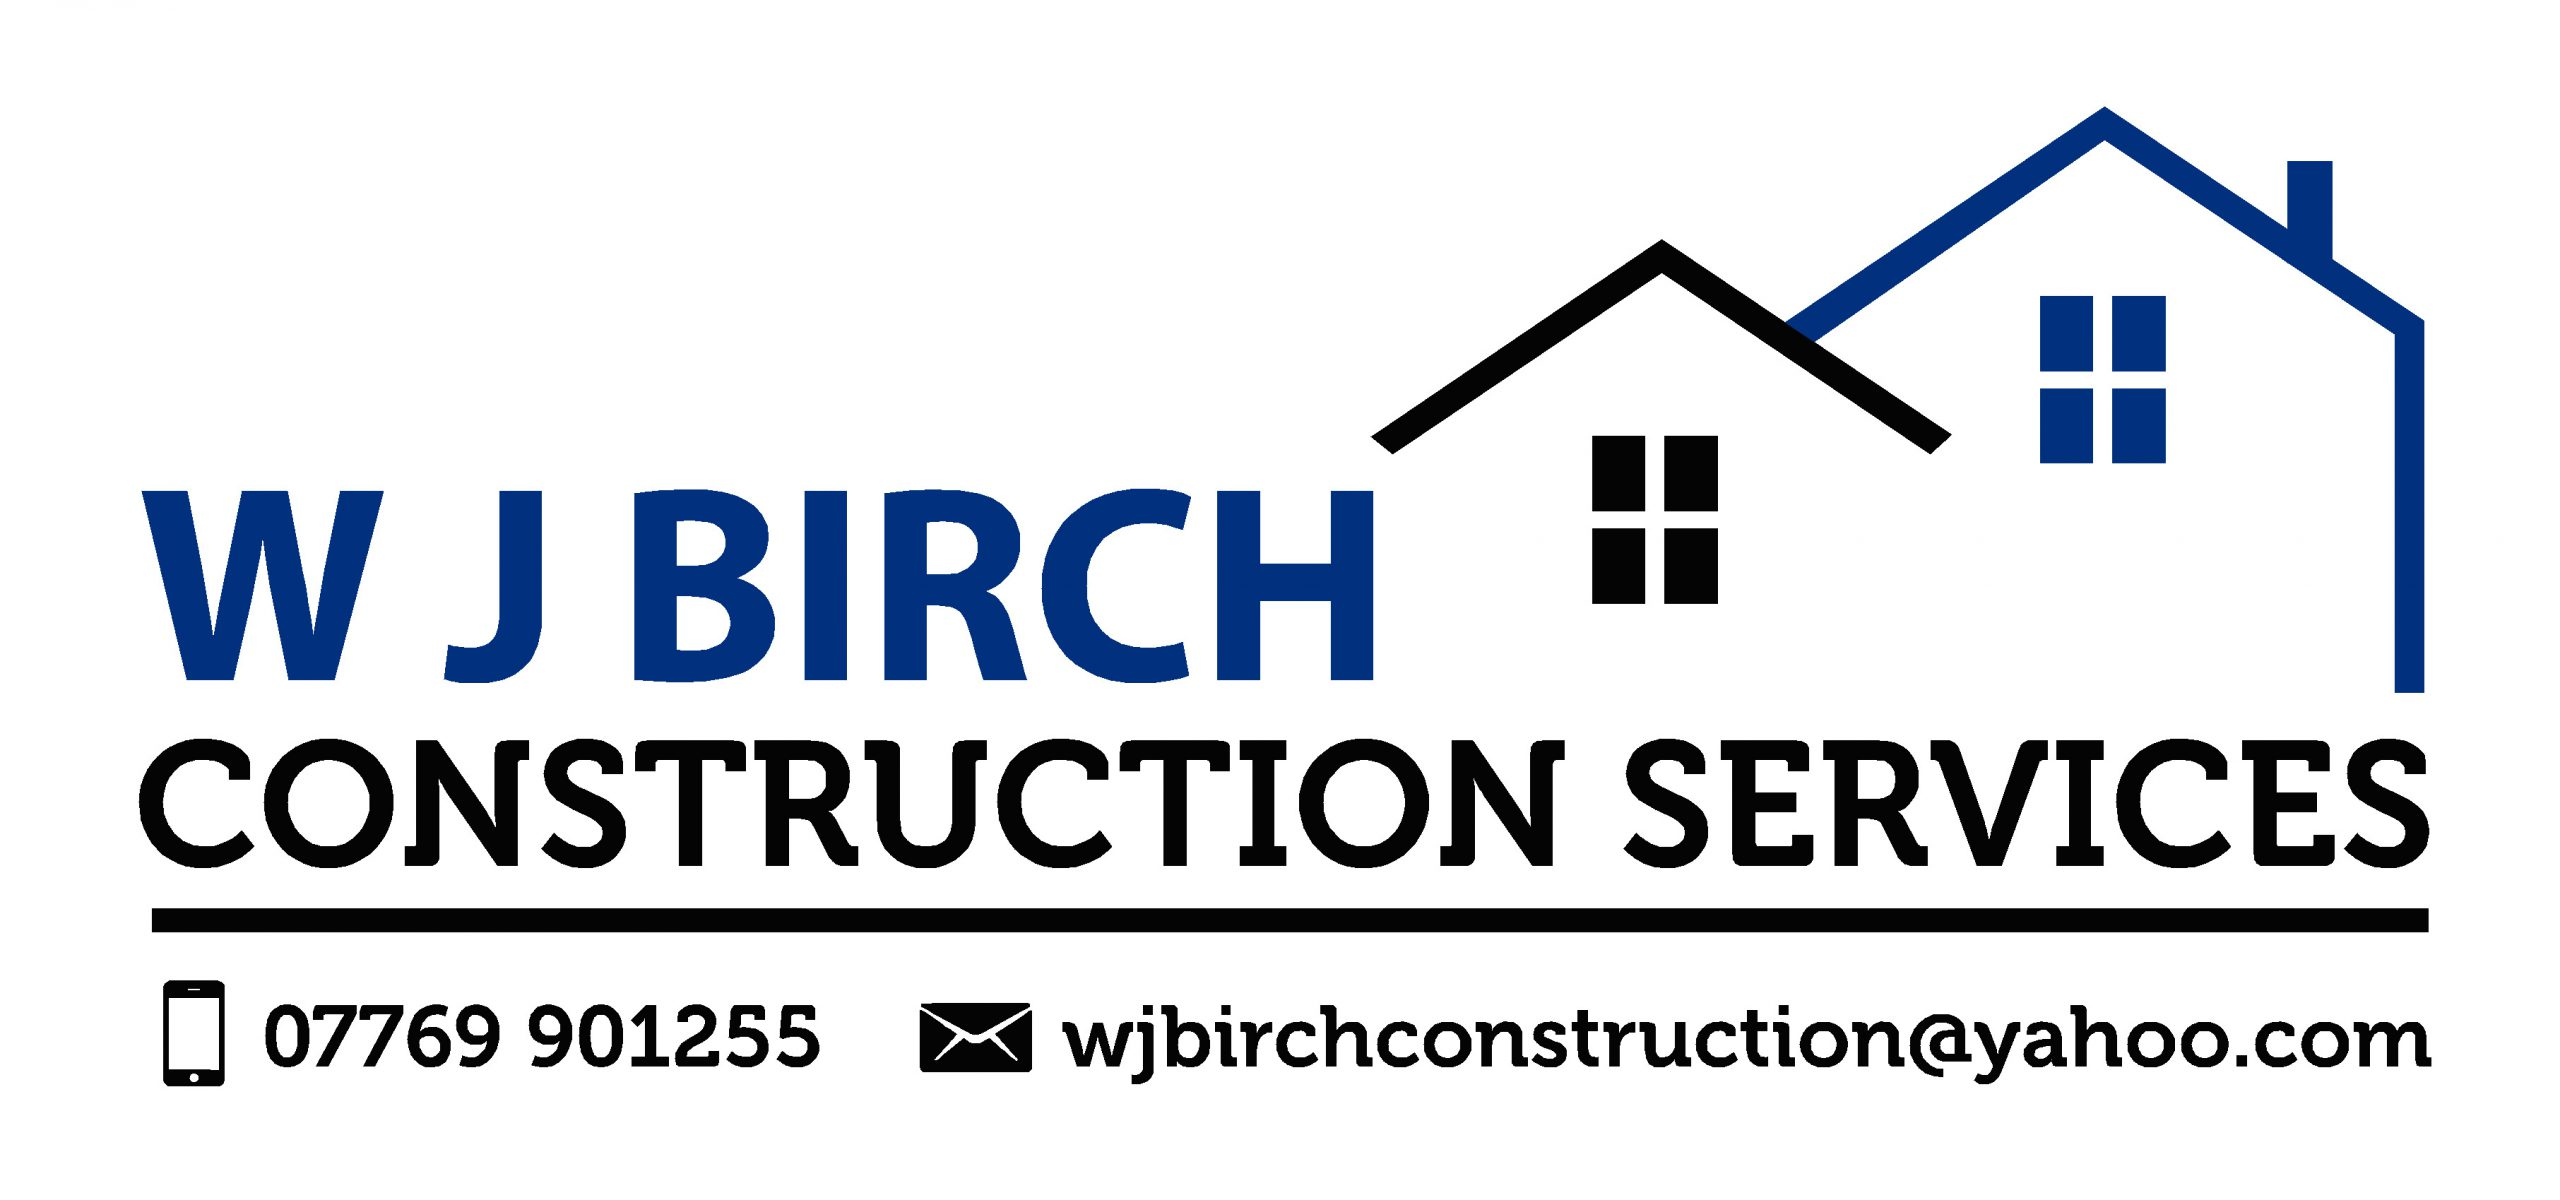 W J Birch Construction Services